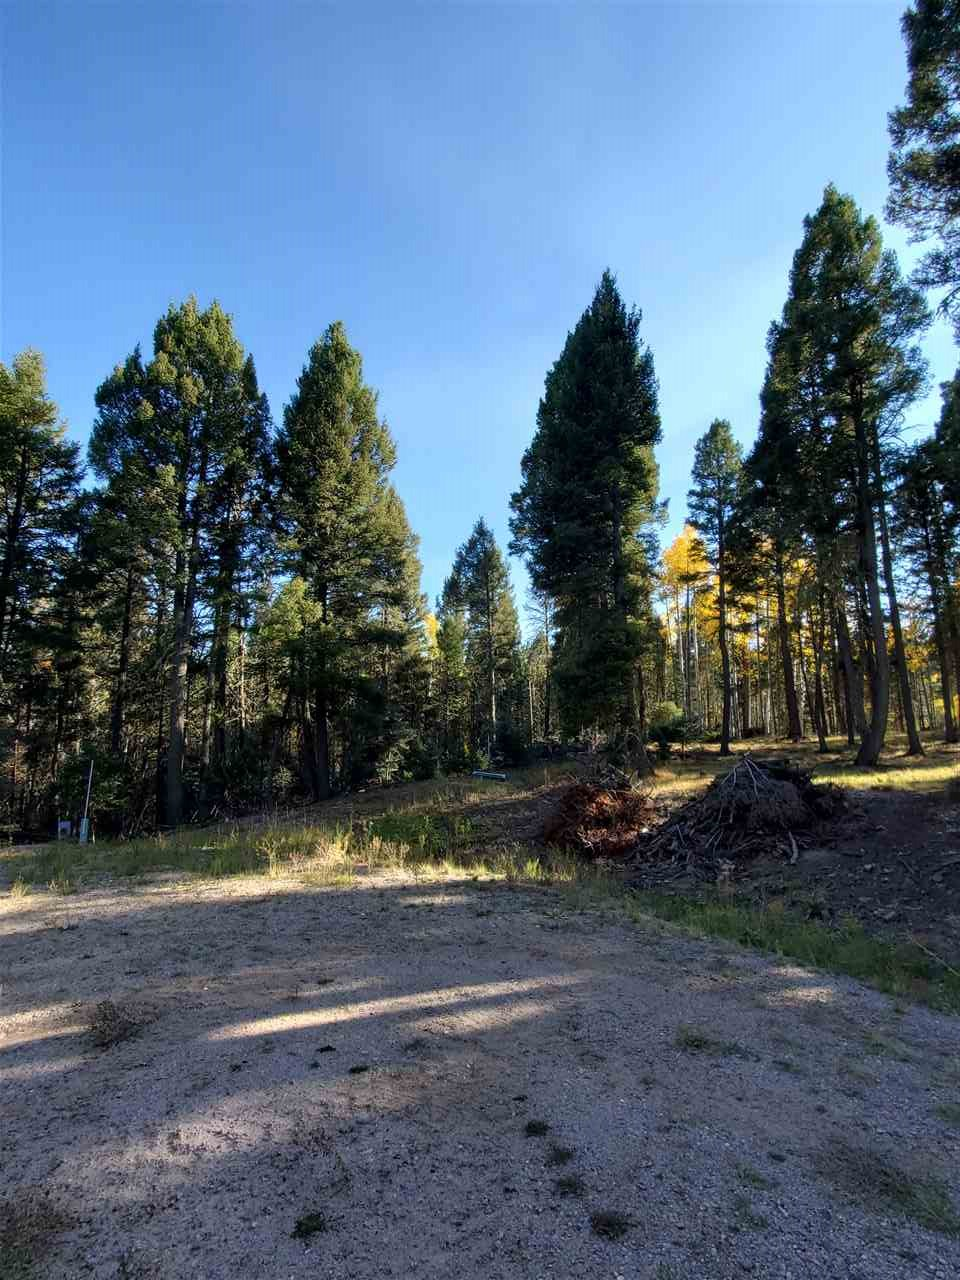 Lot 838 839 840 SAN AGUSTIN CIR, Angel Fire, NM 87710